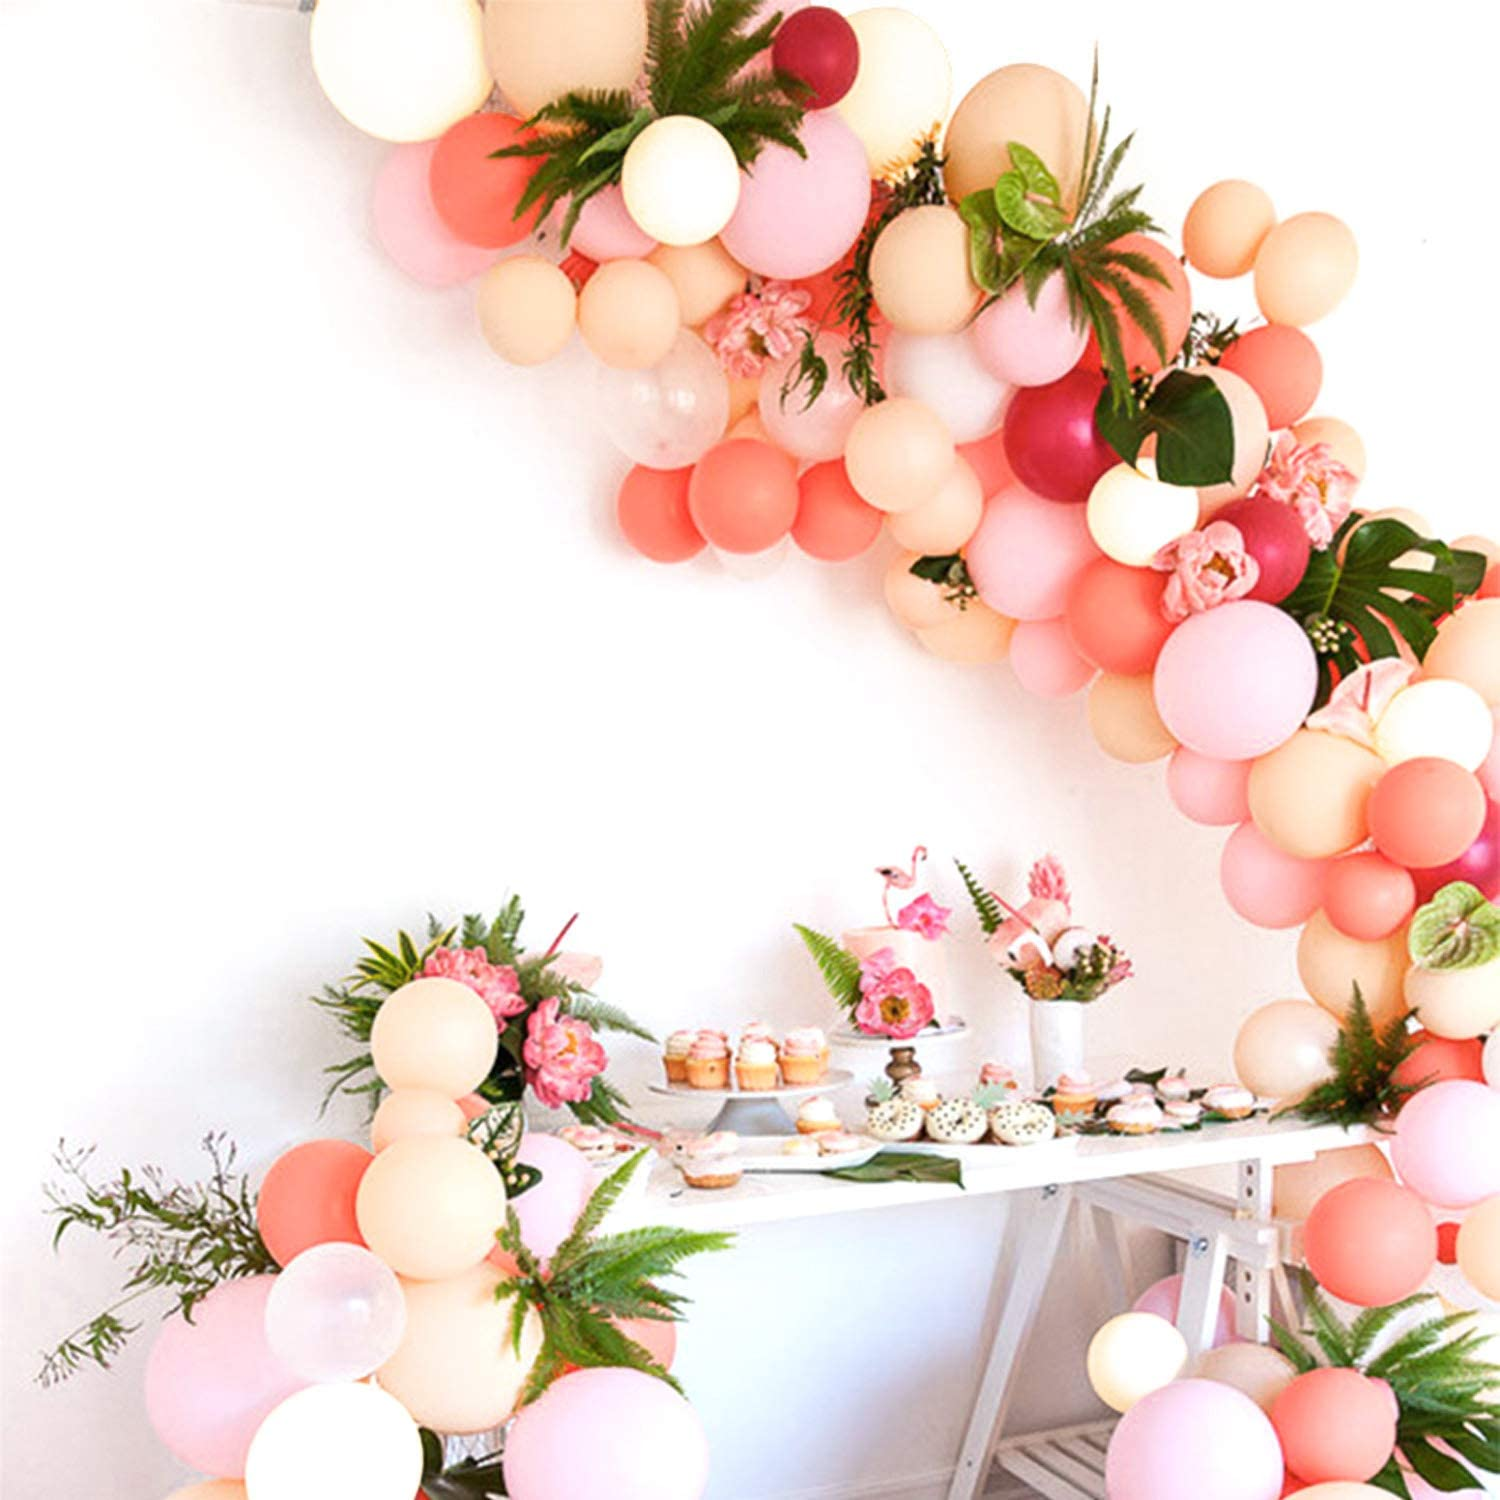 PartyWoo Blush Balloons, 100 pcs Blush Pink Balloons, Fuchsia Balloons, Baby Pink Balloons, Pastel Orange Balloons, Ivory Balloons for Blush Bridal Shower, Blush Wedding Decors, Blush Pink Baby Shower